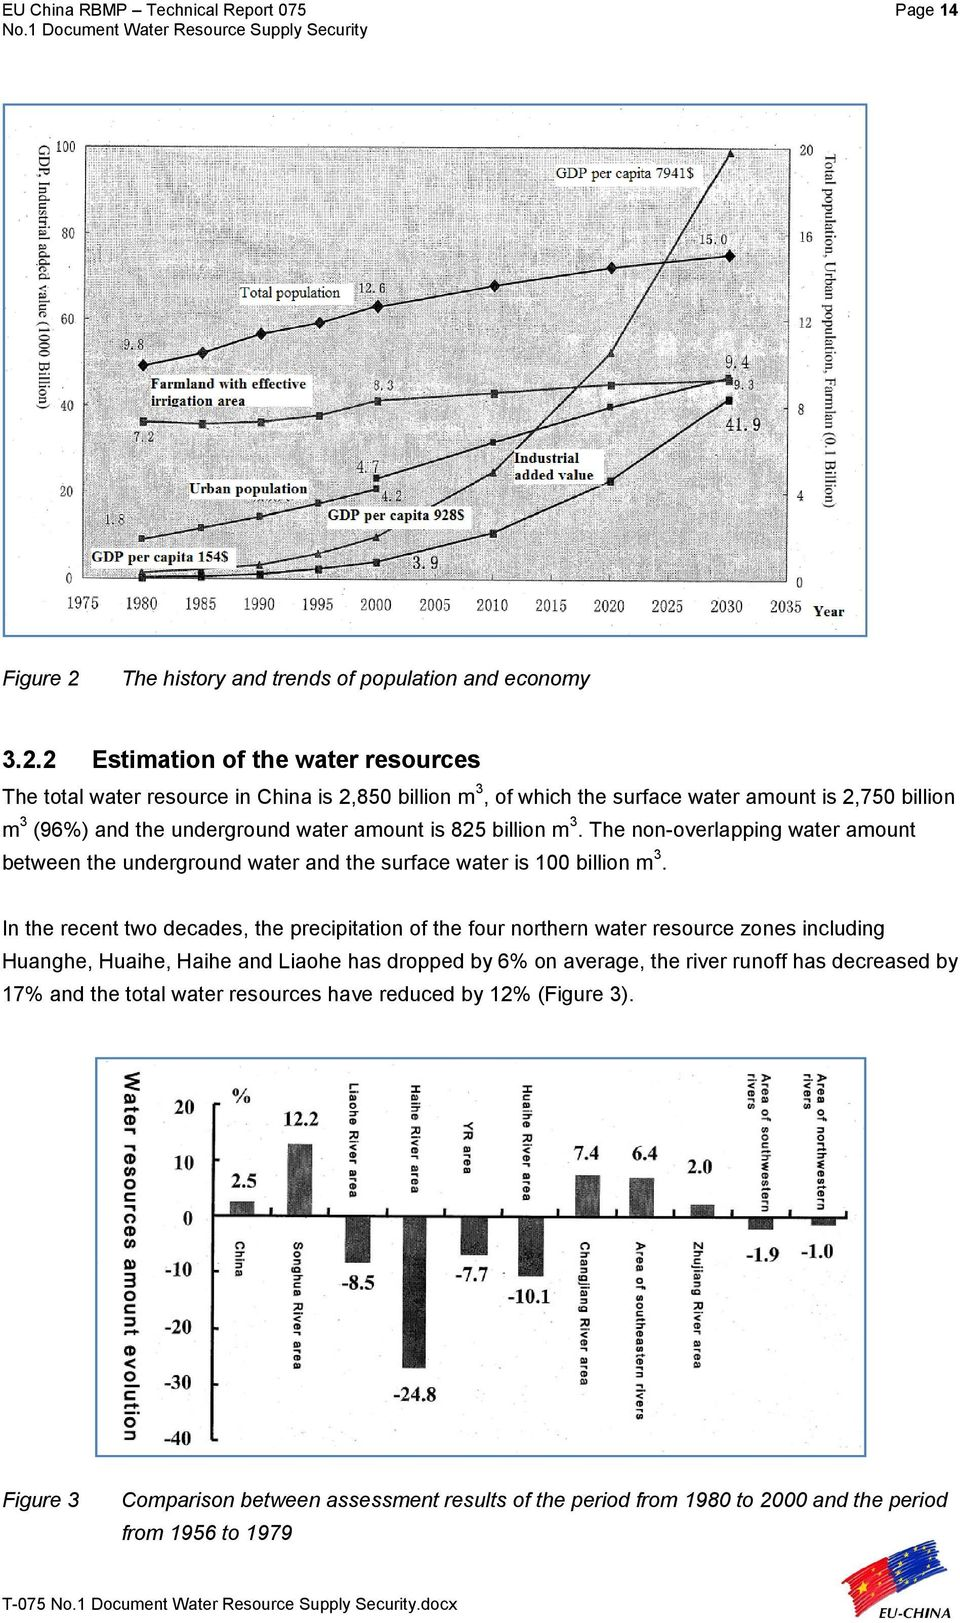 2 Estimation of the water resources The total water resource in China is 2,850 billion m 3, of which the surface water amount is 2,750 billion m 3 (96%) and the underground water amount is 825